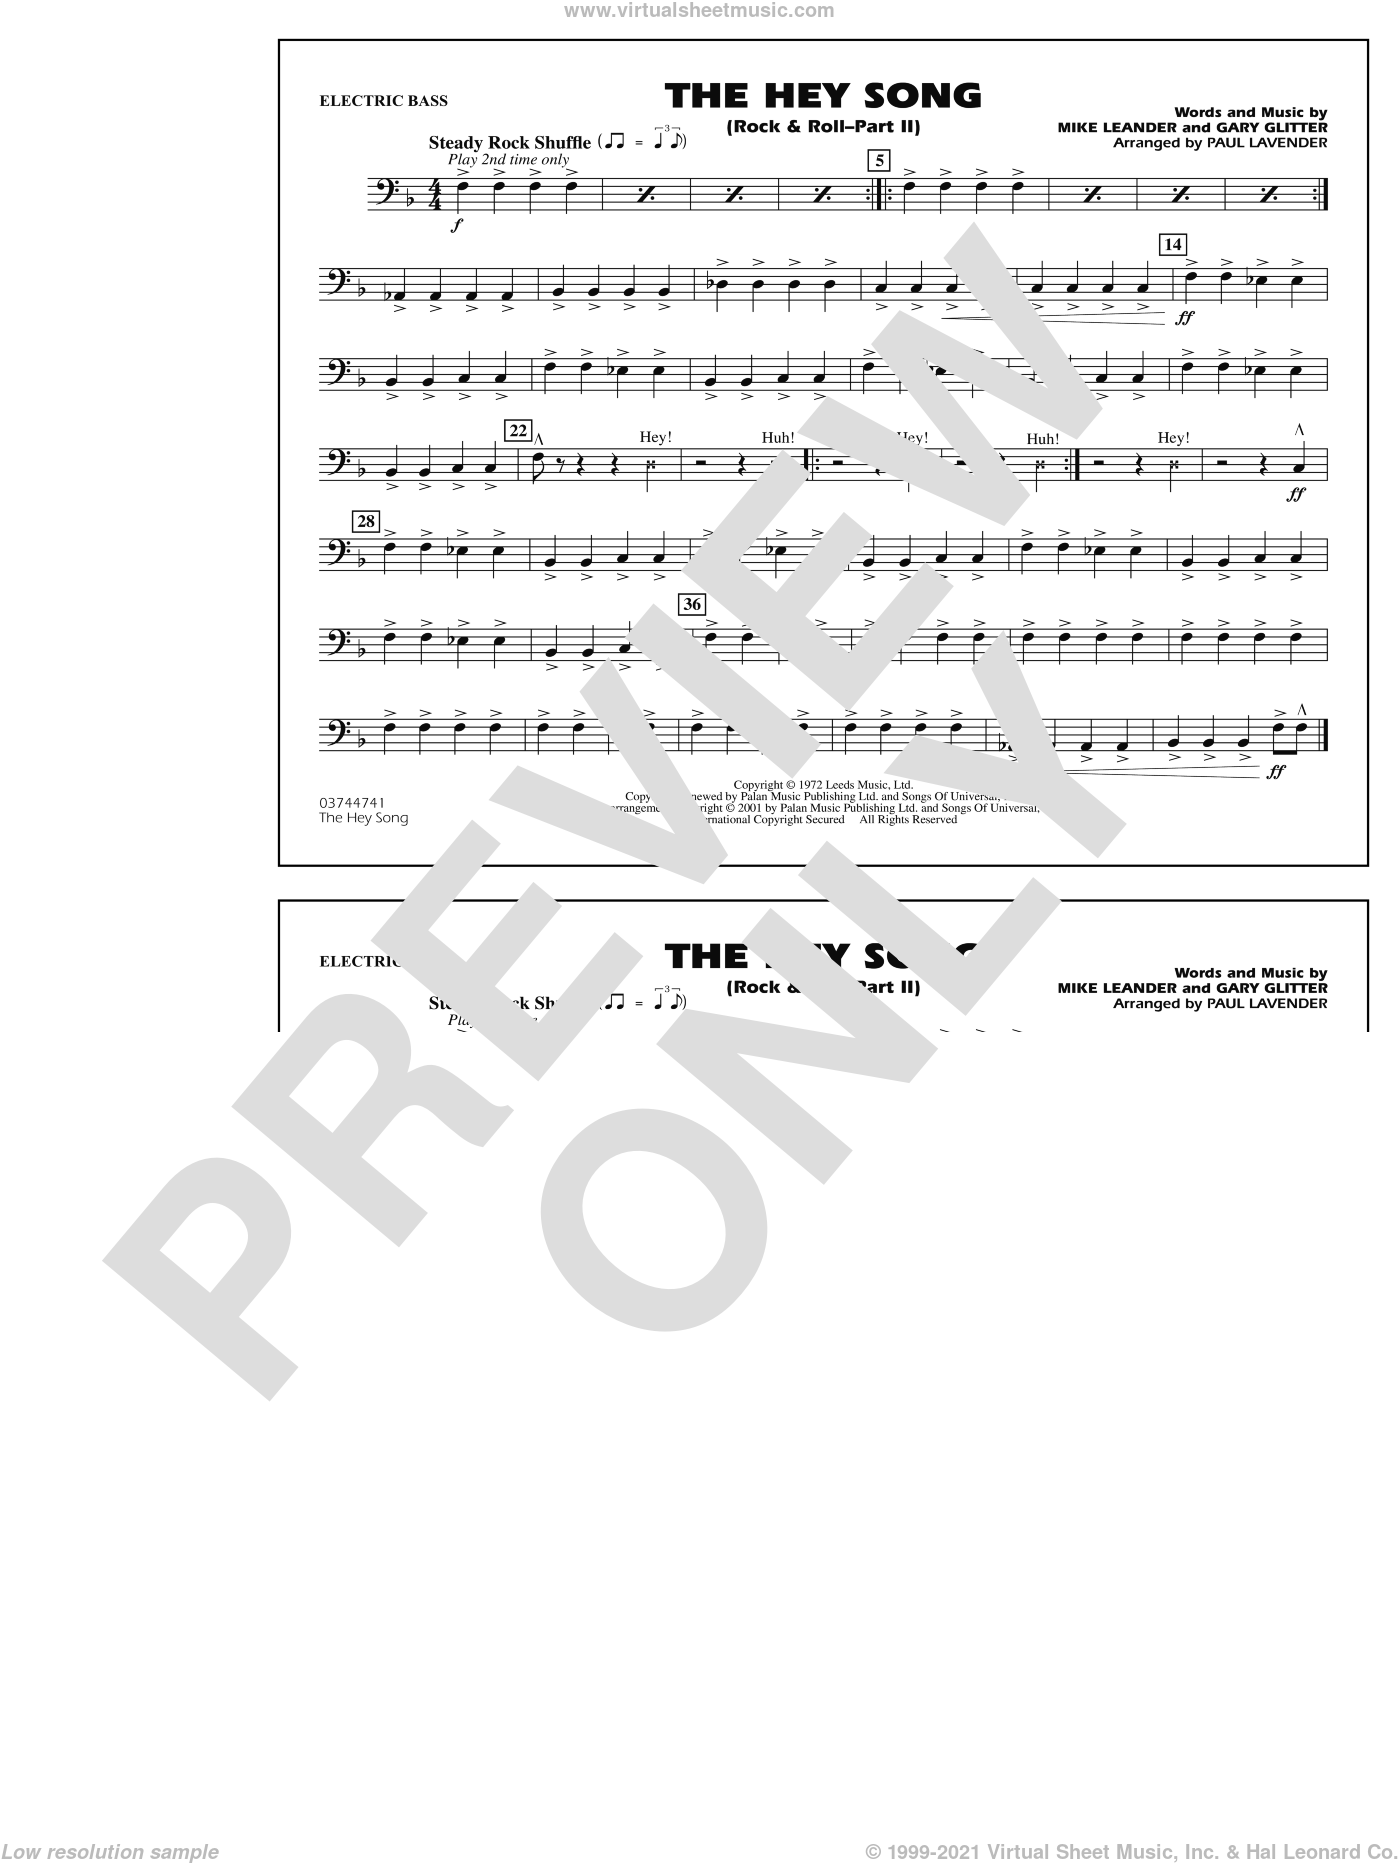 Rock and Roll, part ii (the hey song) sheet music for marching band (electric bass) by Paul Lavender, Mike Leander and Gary Glitter, intermediate skill level